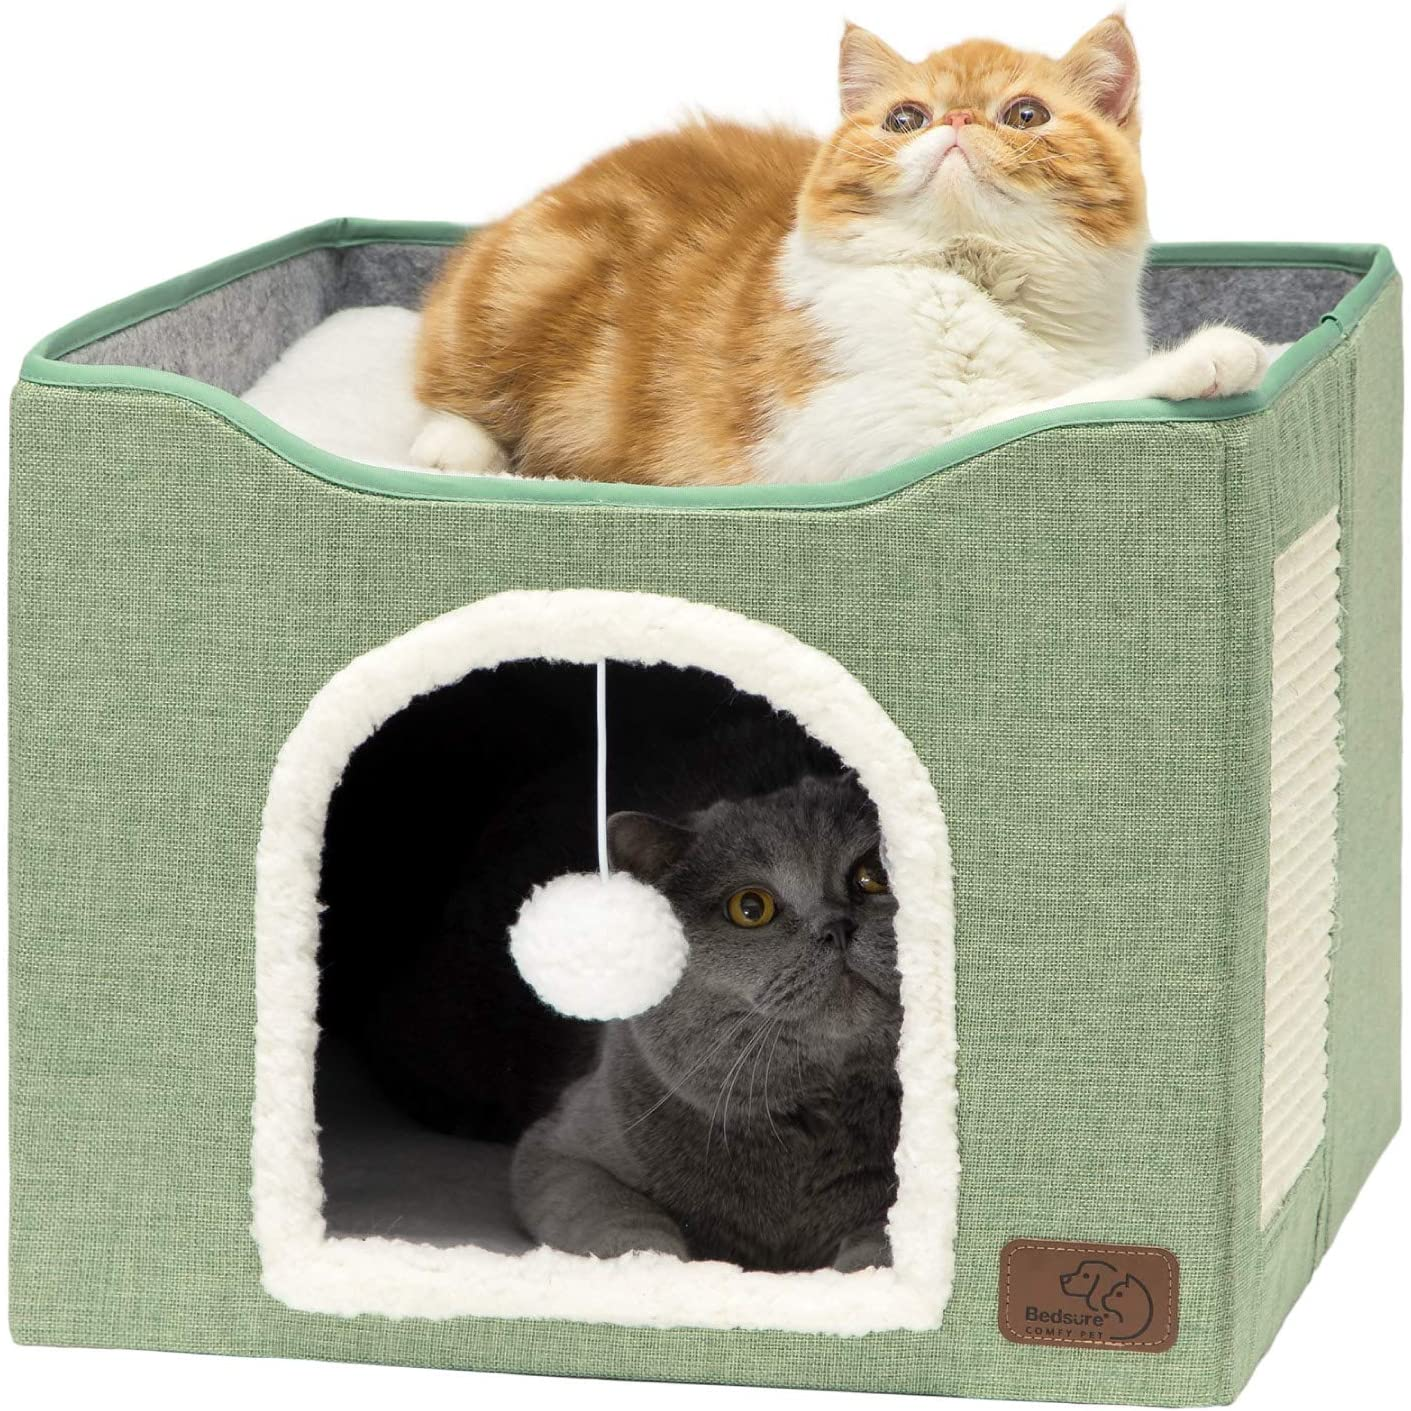 Bedsure Challenge the lowest price of Japan Cat Beds for Indoor Cave Hou Pet Over item handling ☆ Cats -Large